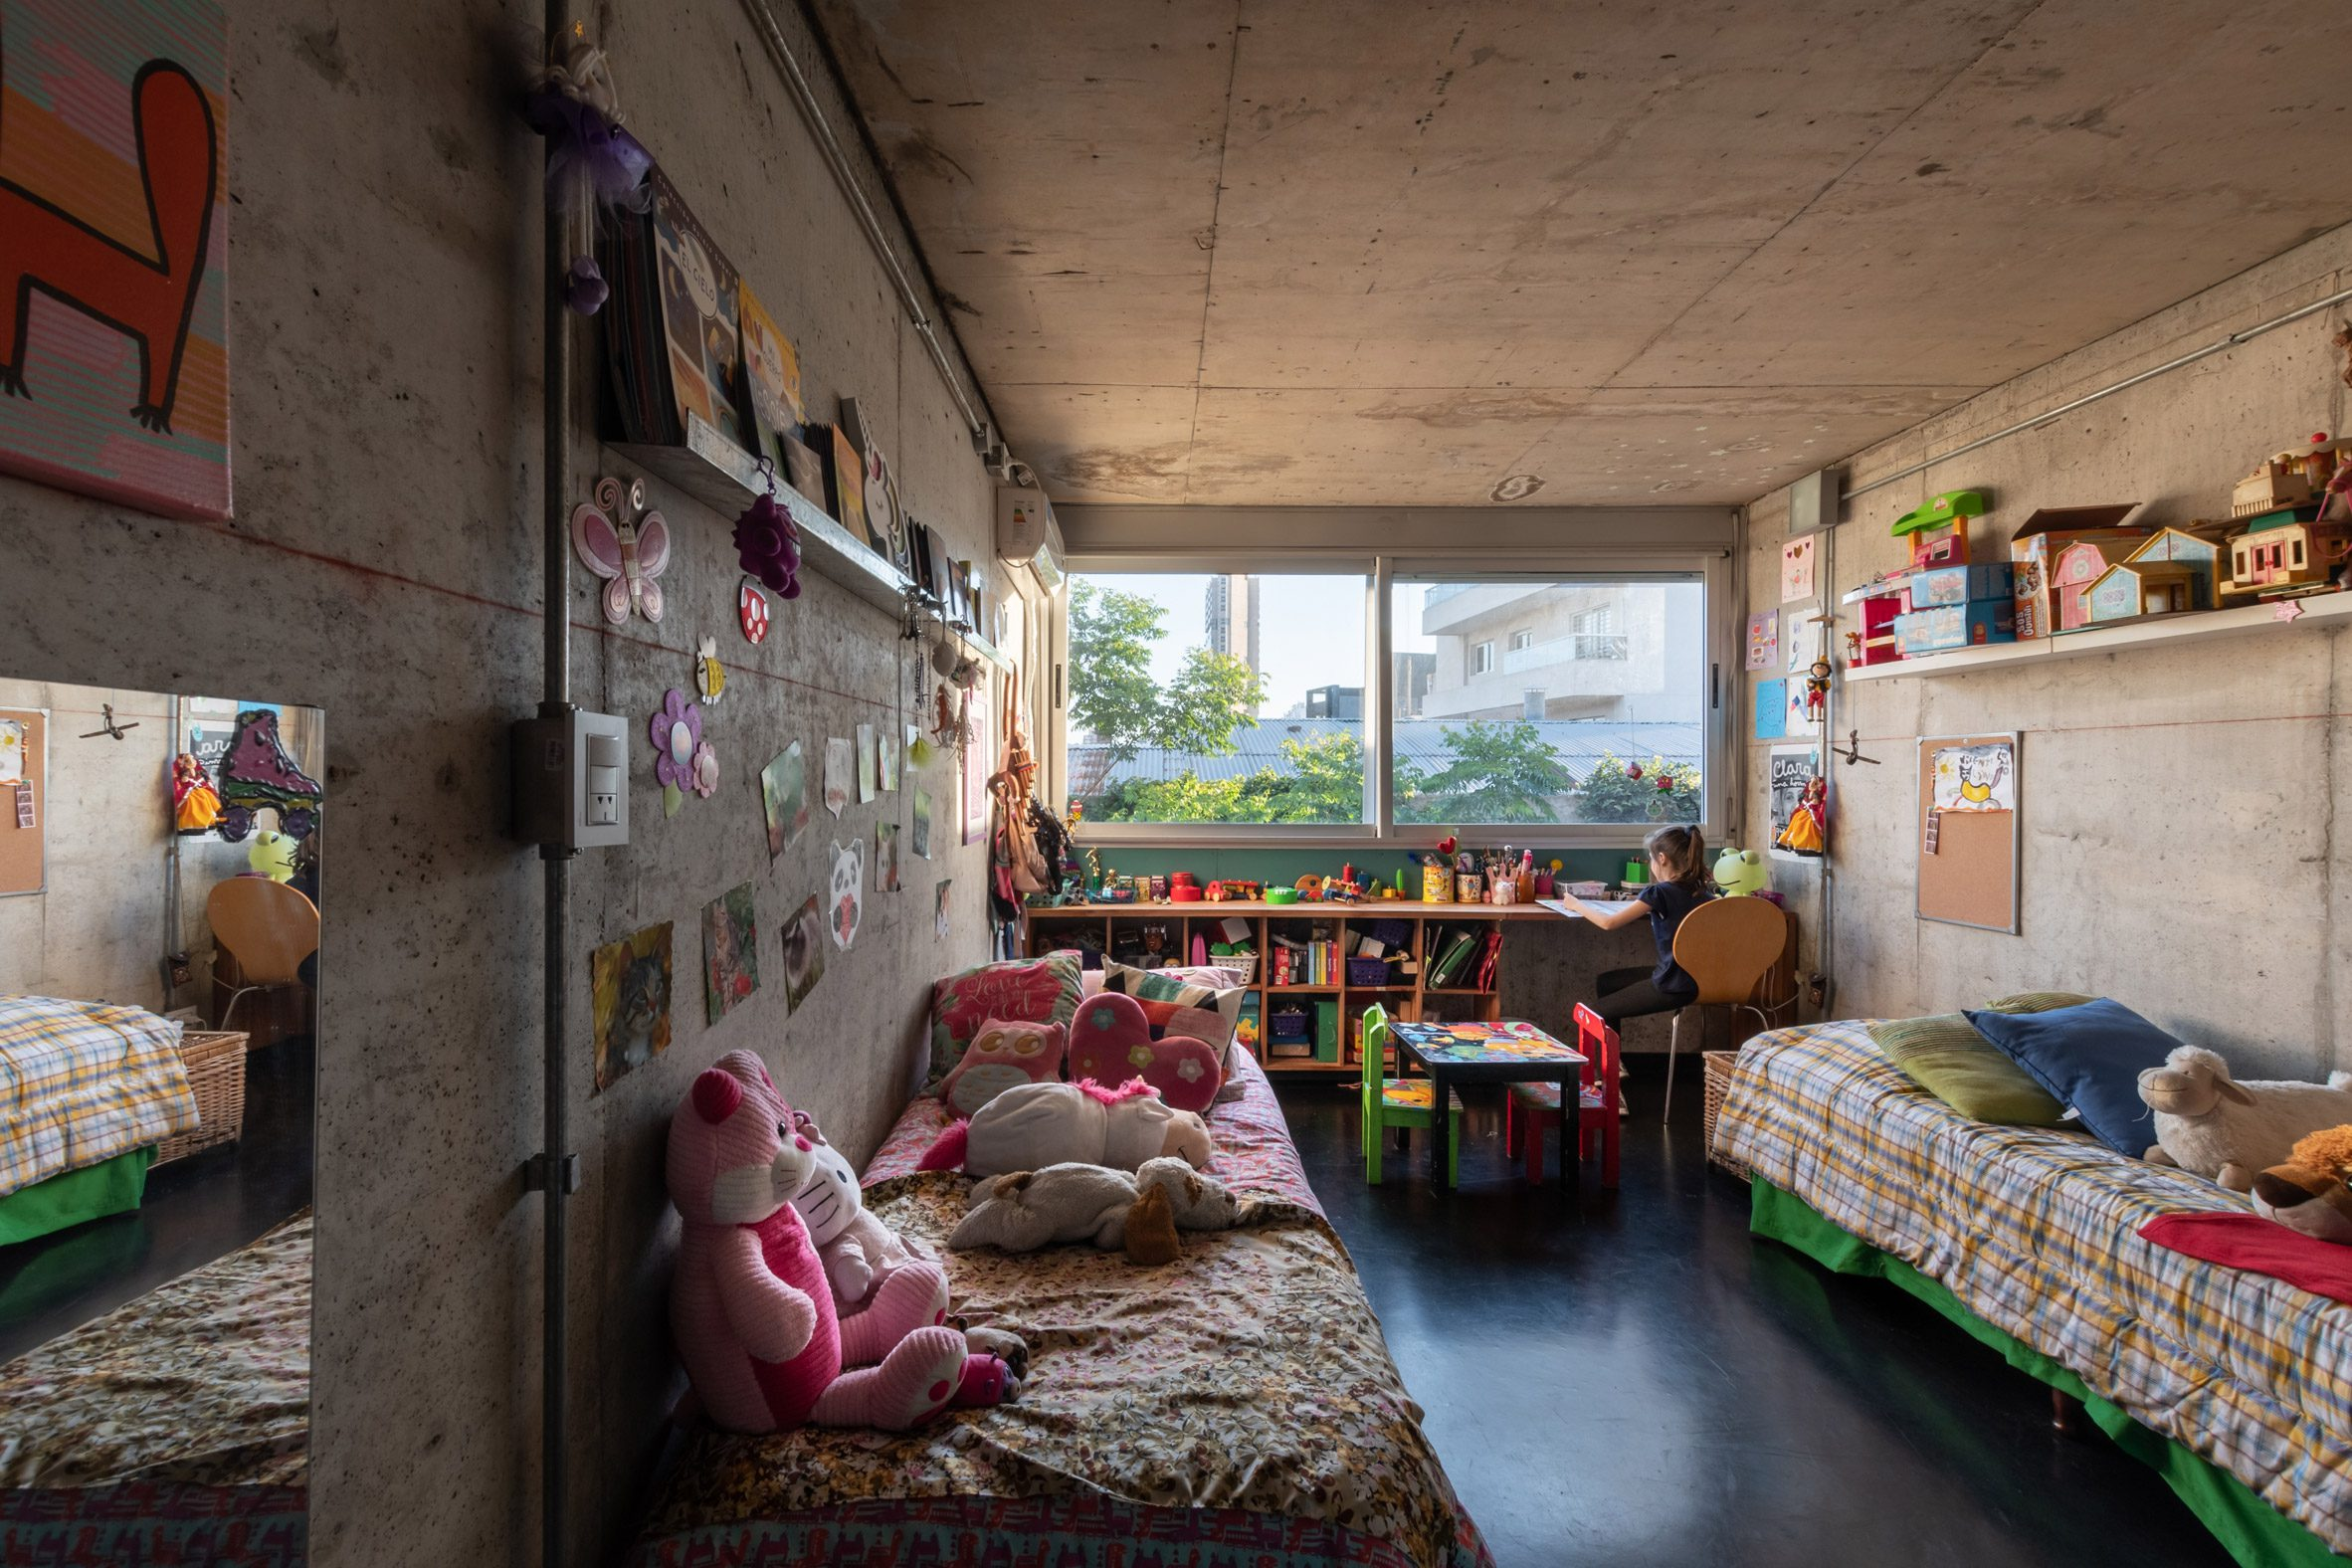 A children's bedroom in The Tríptico Building